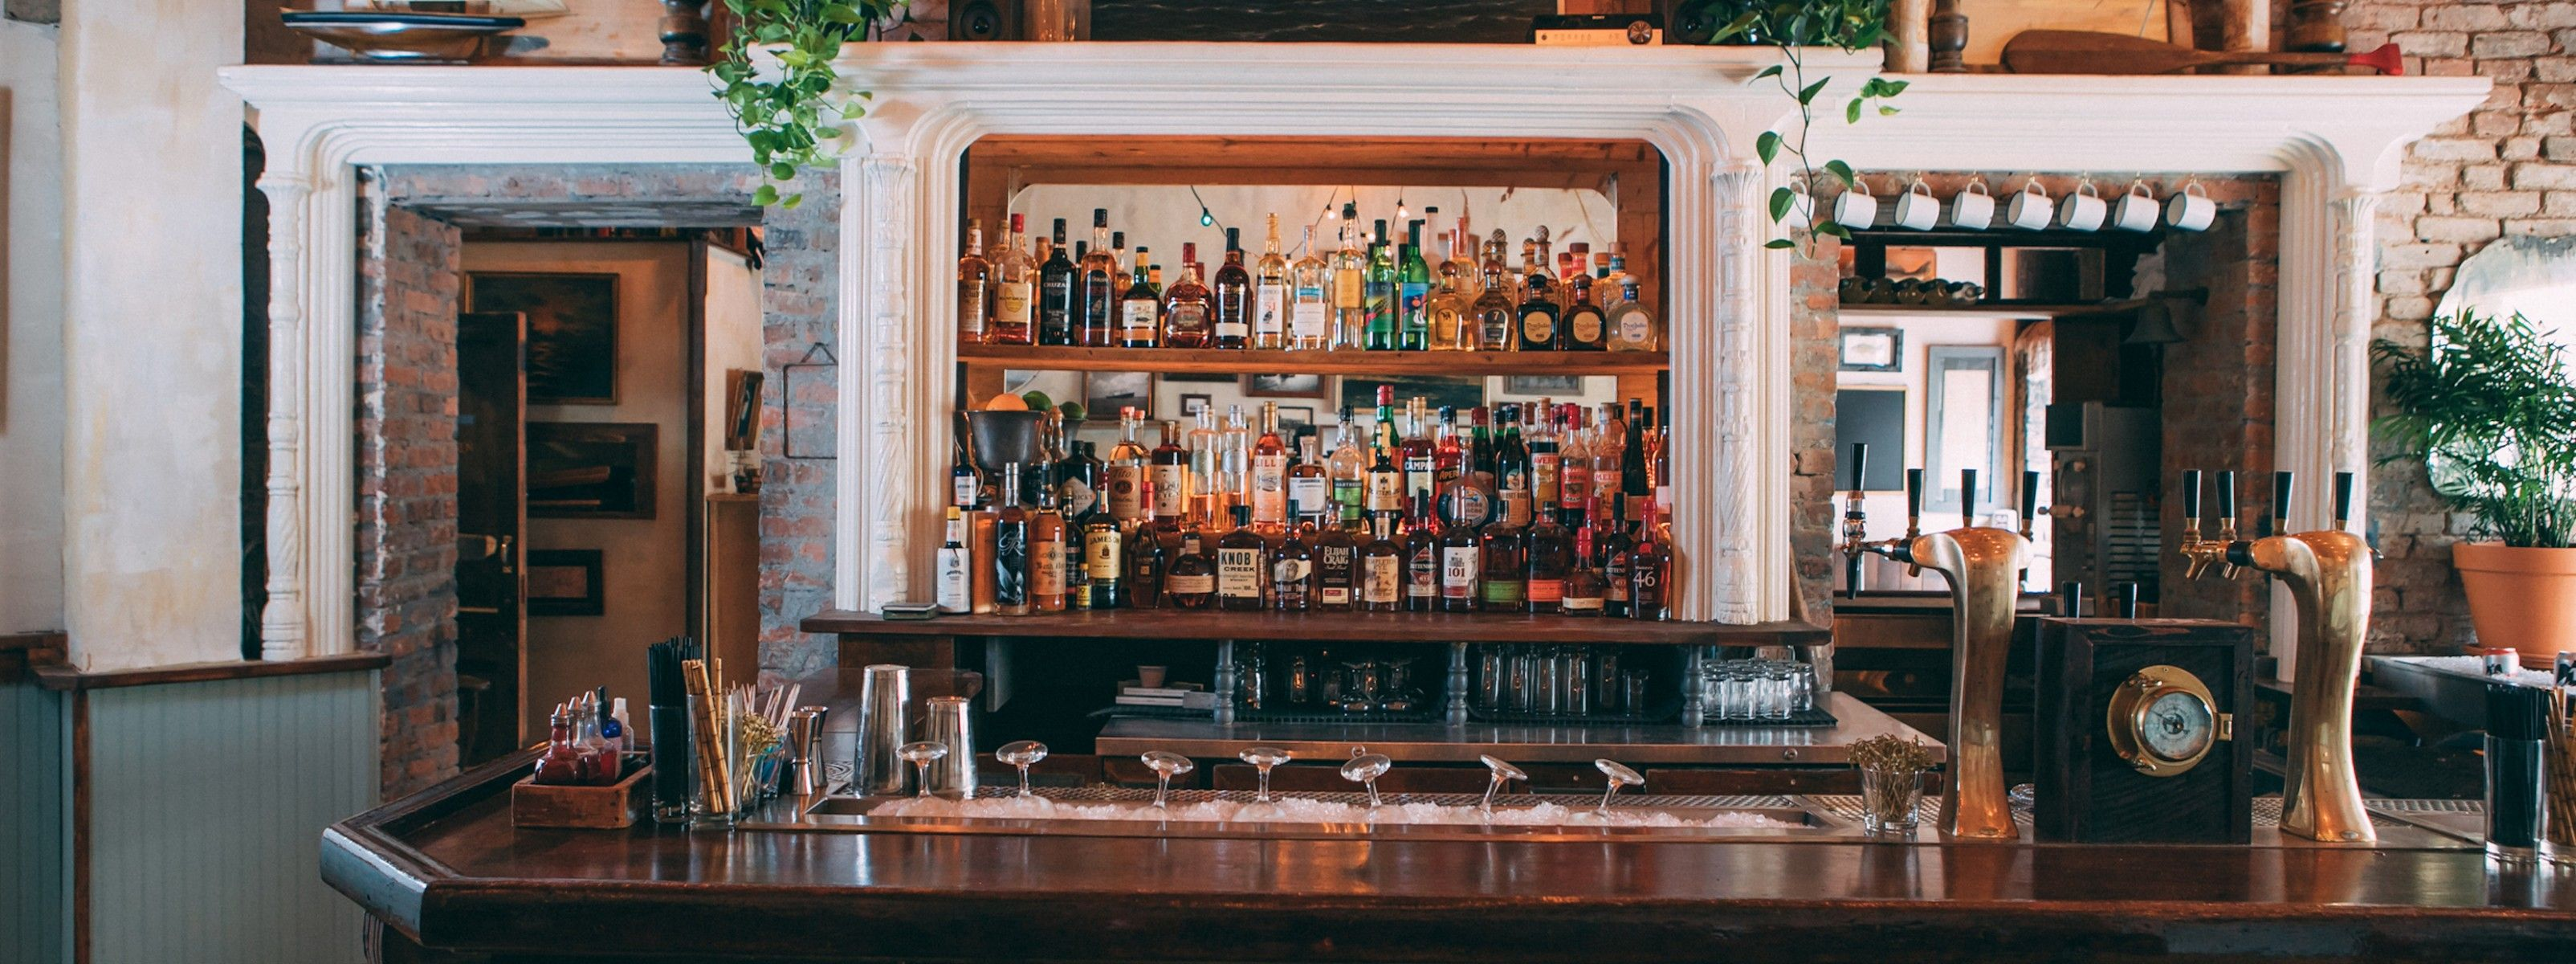 cfde72f9db63 The Best Happy Hours In Manhattan - New York